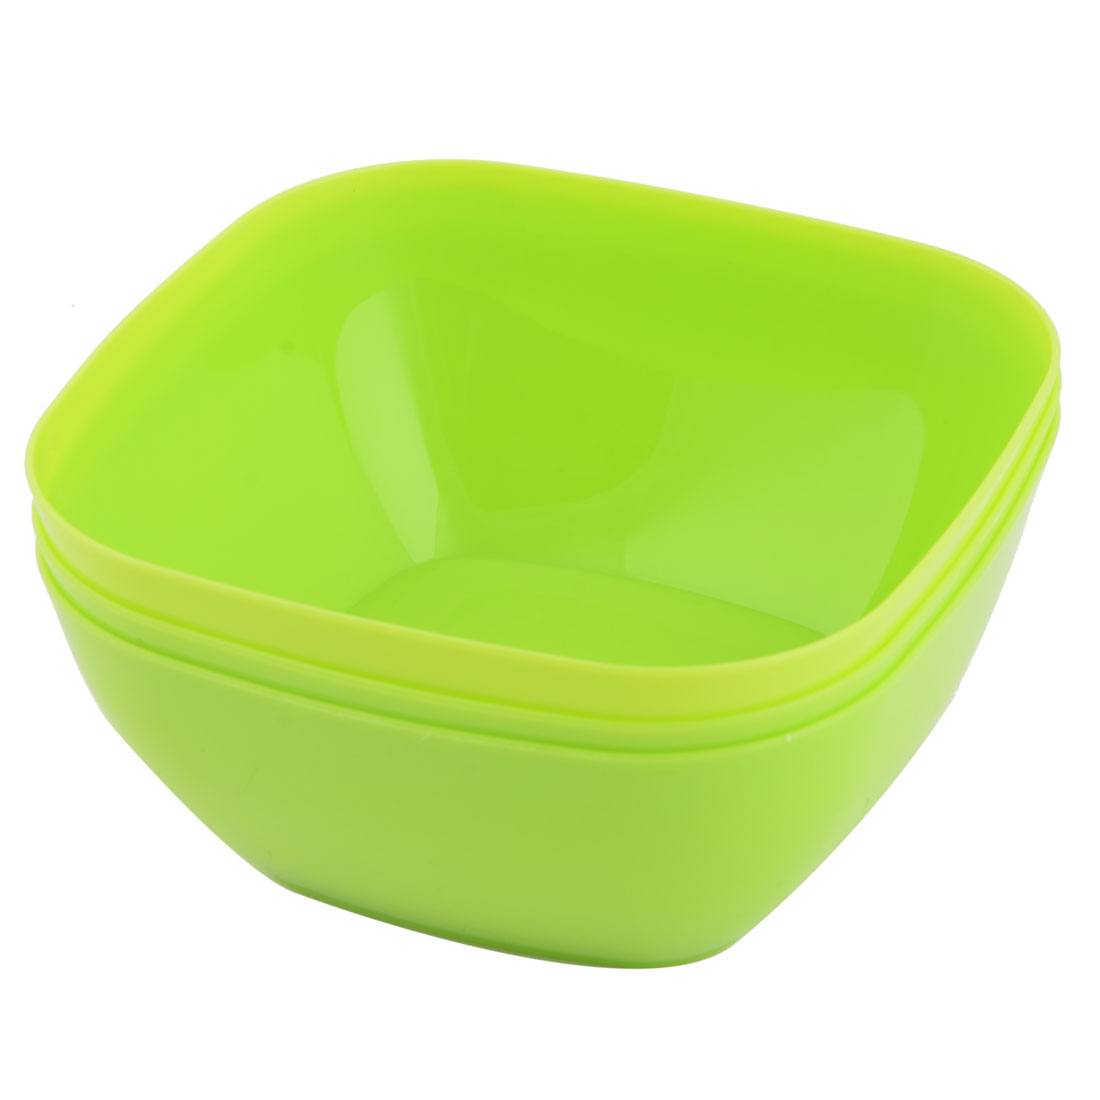 Home Refrigerator Plastic Square Fruit Foods Container Snacks Bowl Green 3pcs